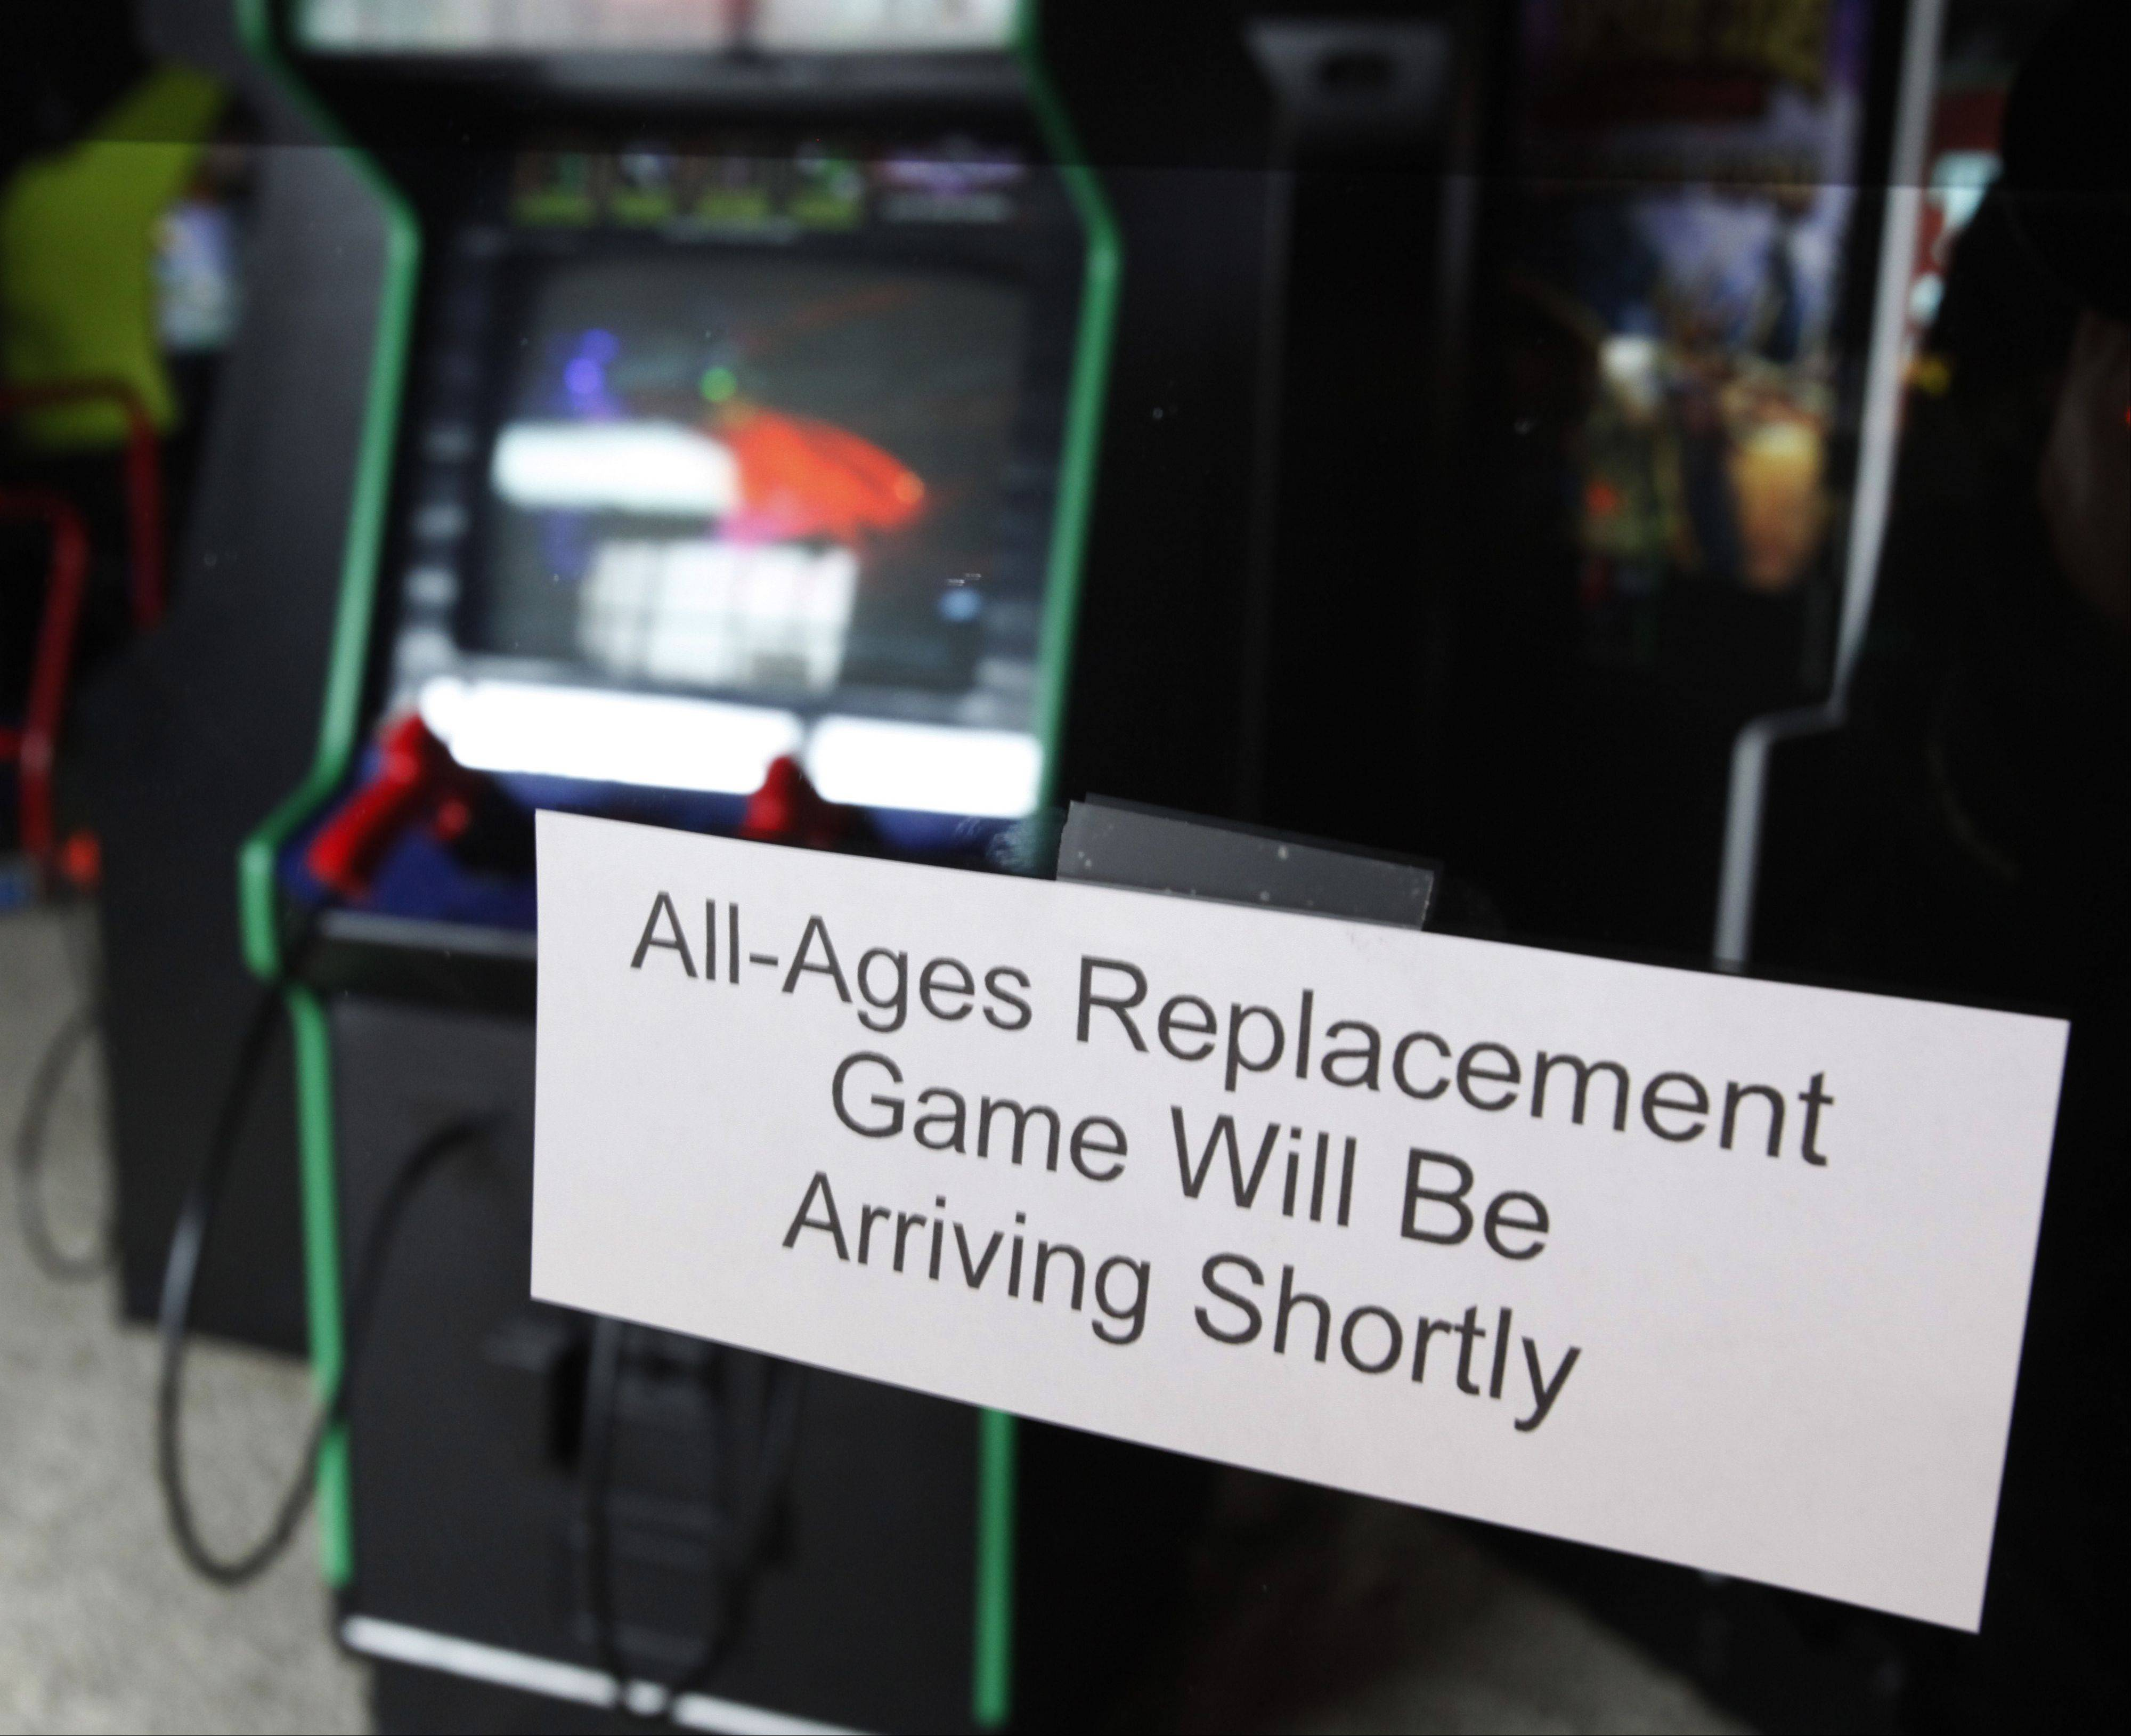 No Limit Arcade co-owner Kevin Slota says he doesn�t see how taking the violent games out of the arcade will hurt his business, especially given that he�s replacing them with other games.